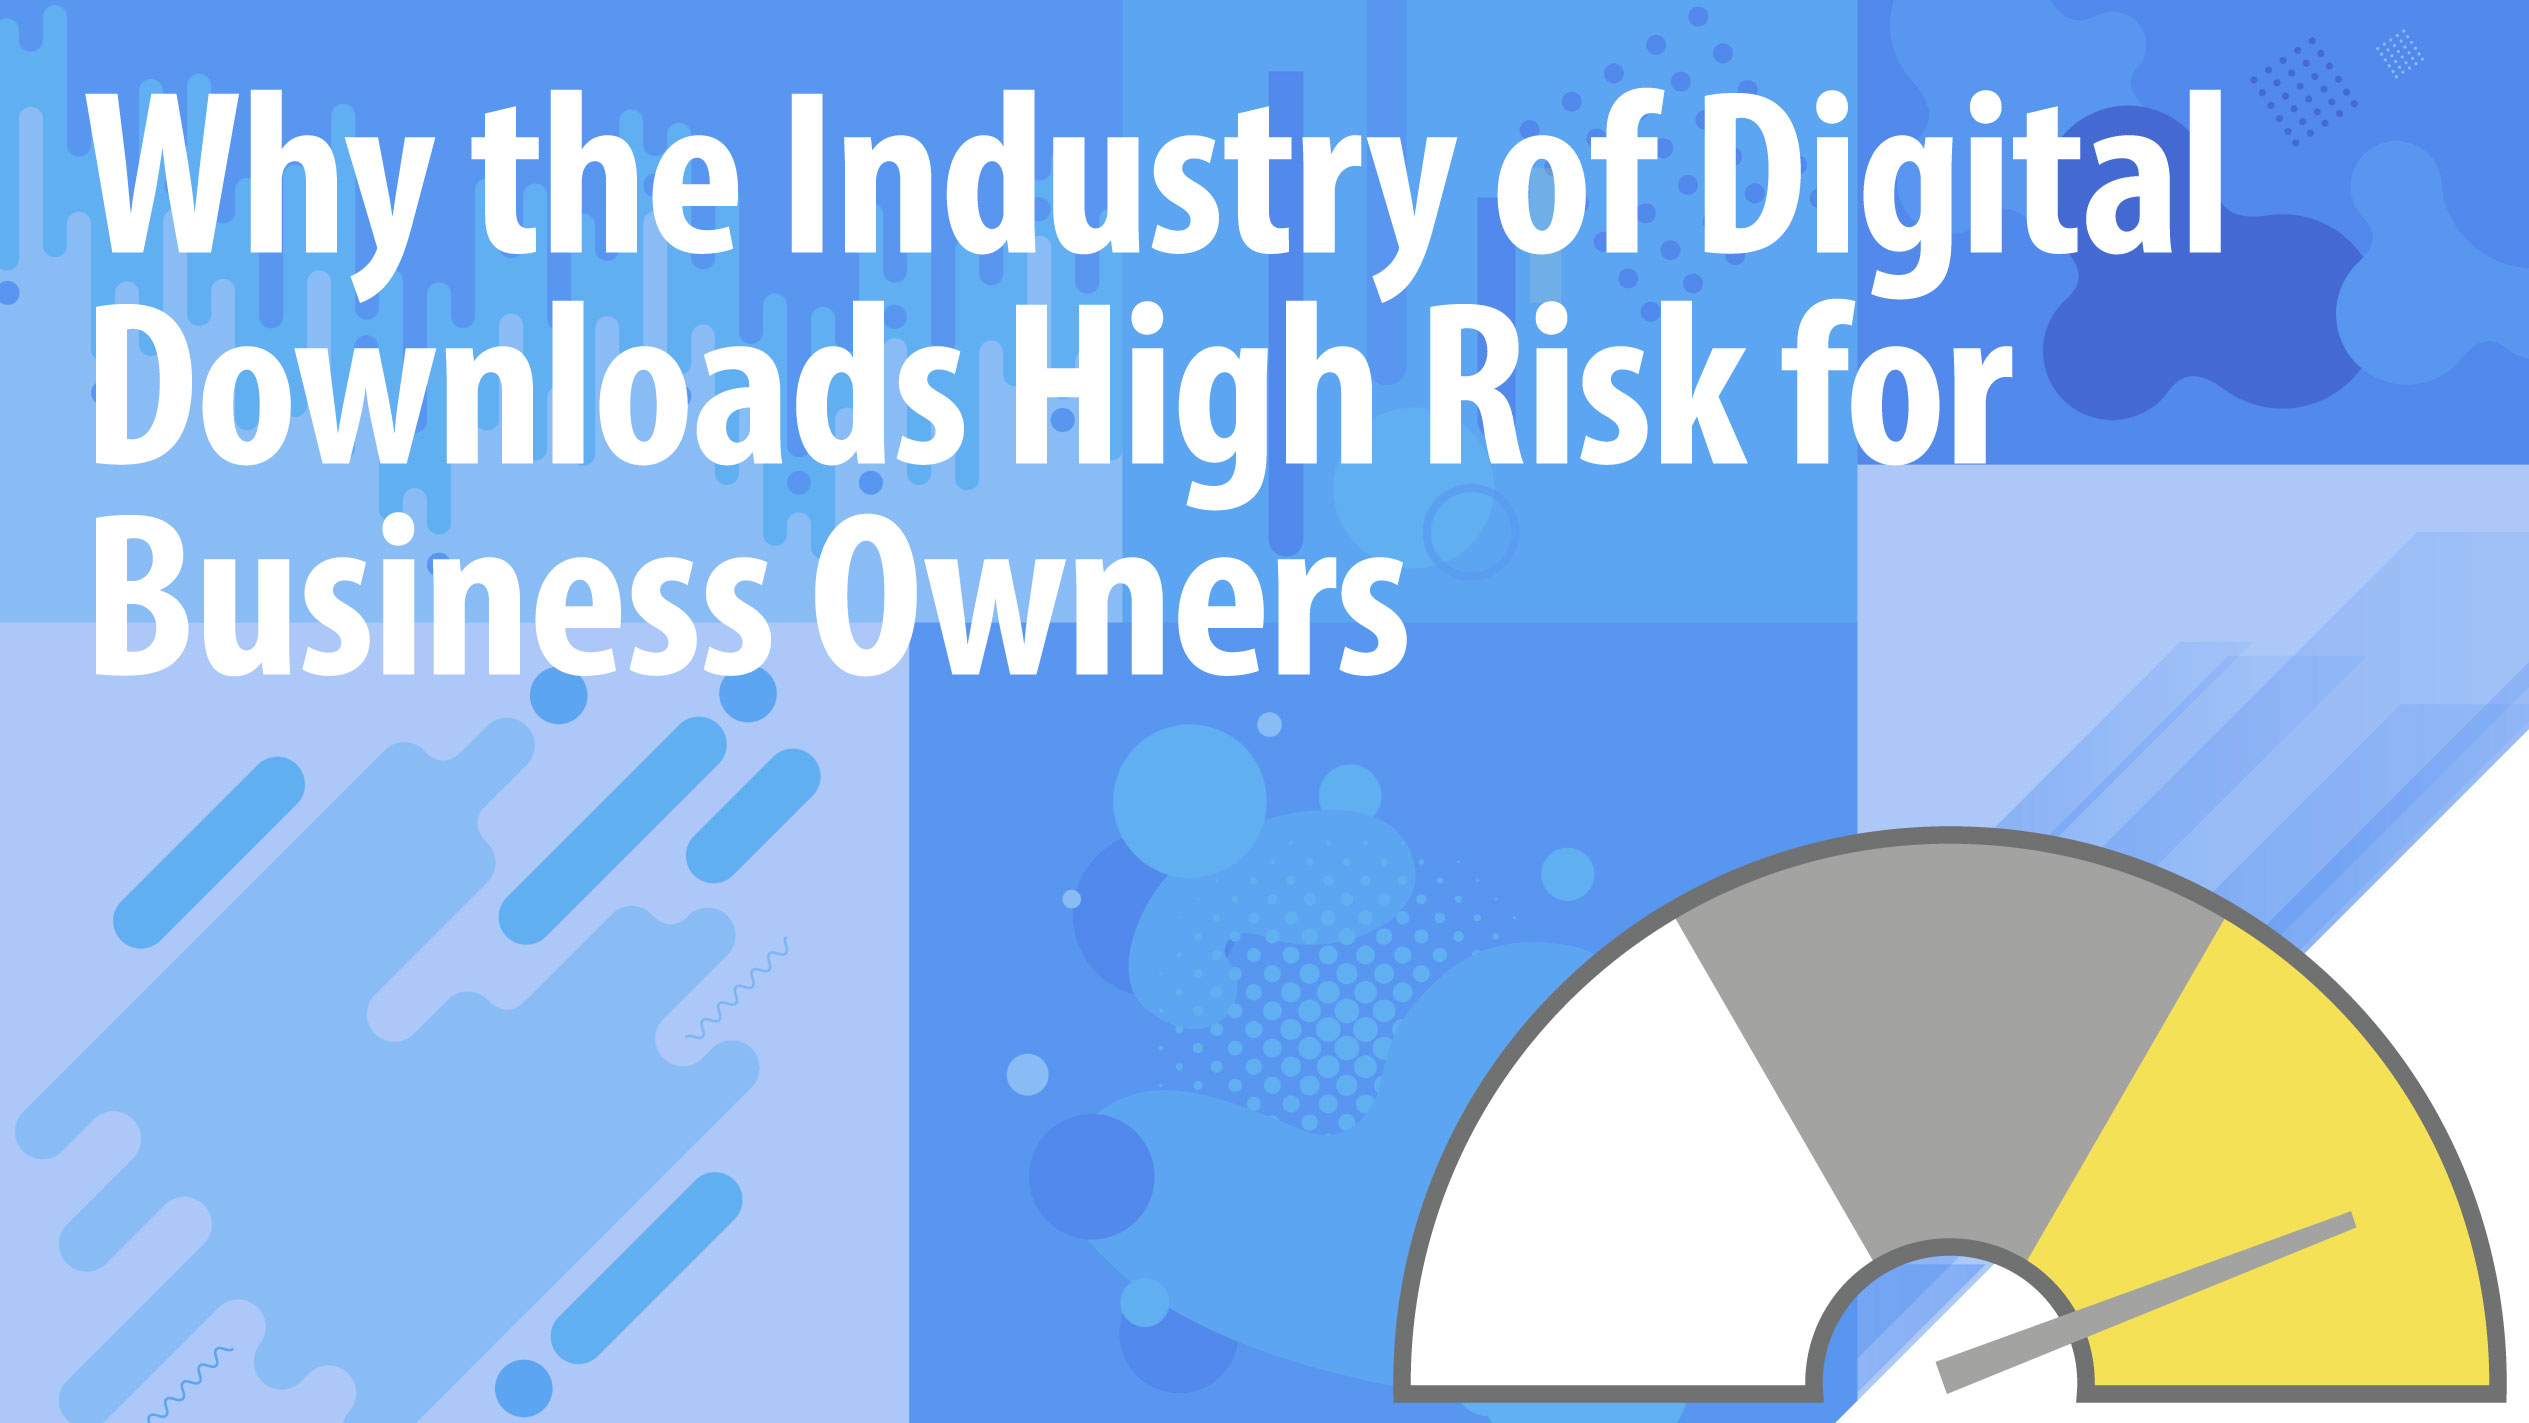 Why the Industry of Digital Downloads High Risk for Business Owners